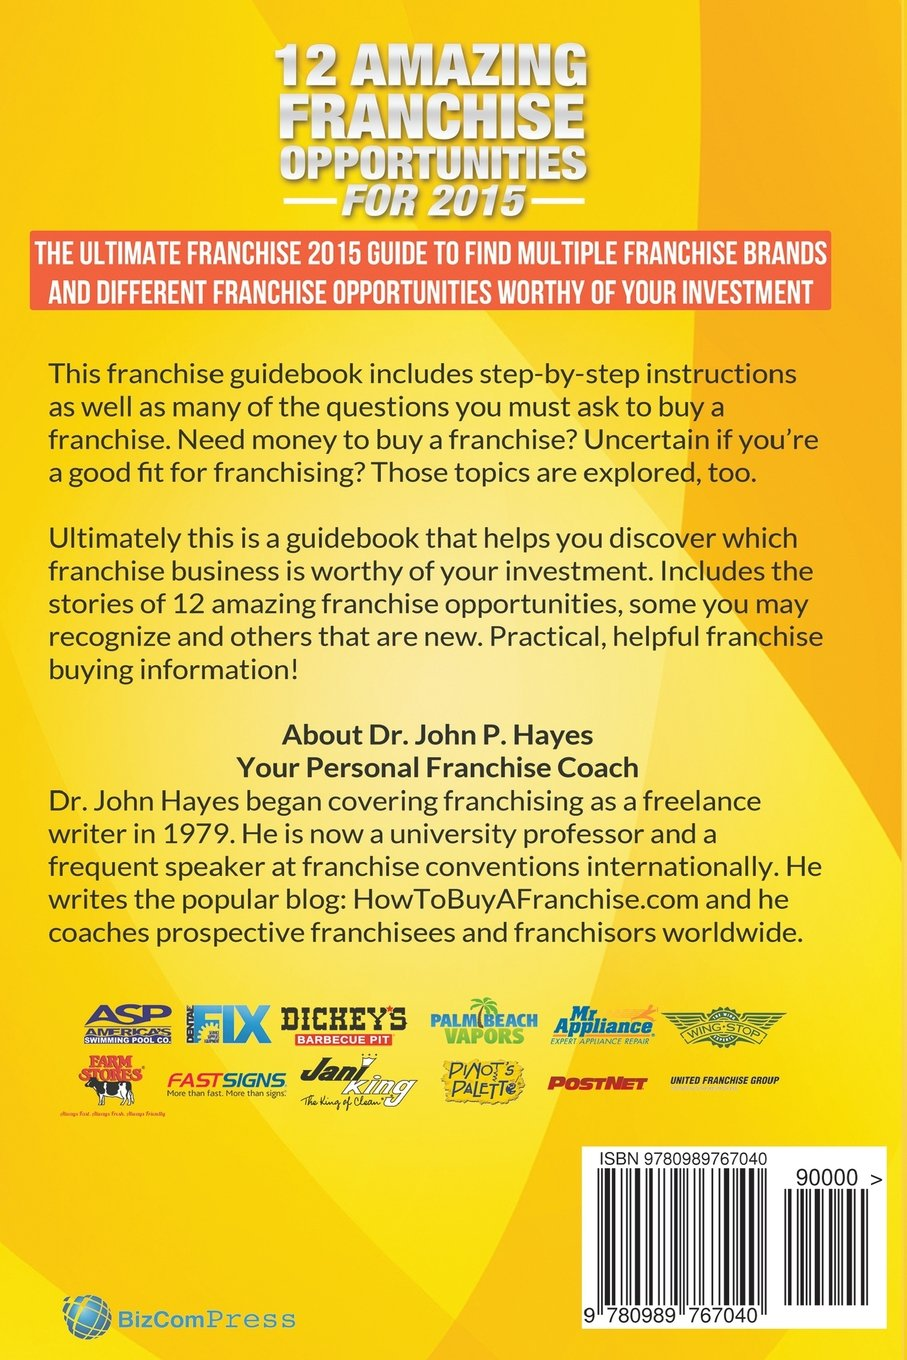 12 amazing franchise opportunities for 2015 dr john p hayes 12 amazing franchise opportunities for 2015 dr john p hayes 9780989767040 amazon com books